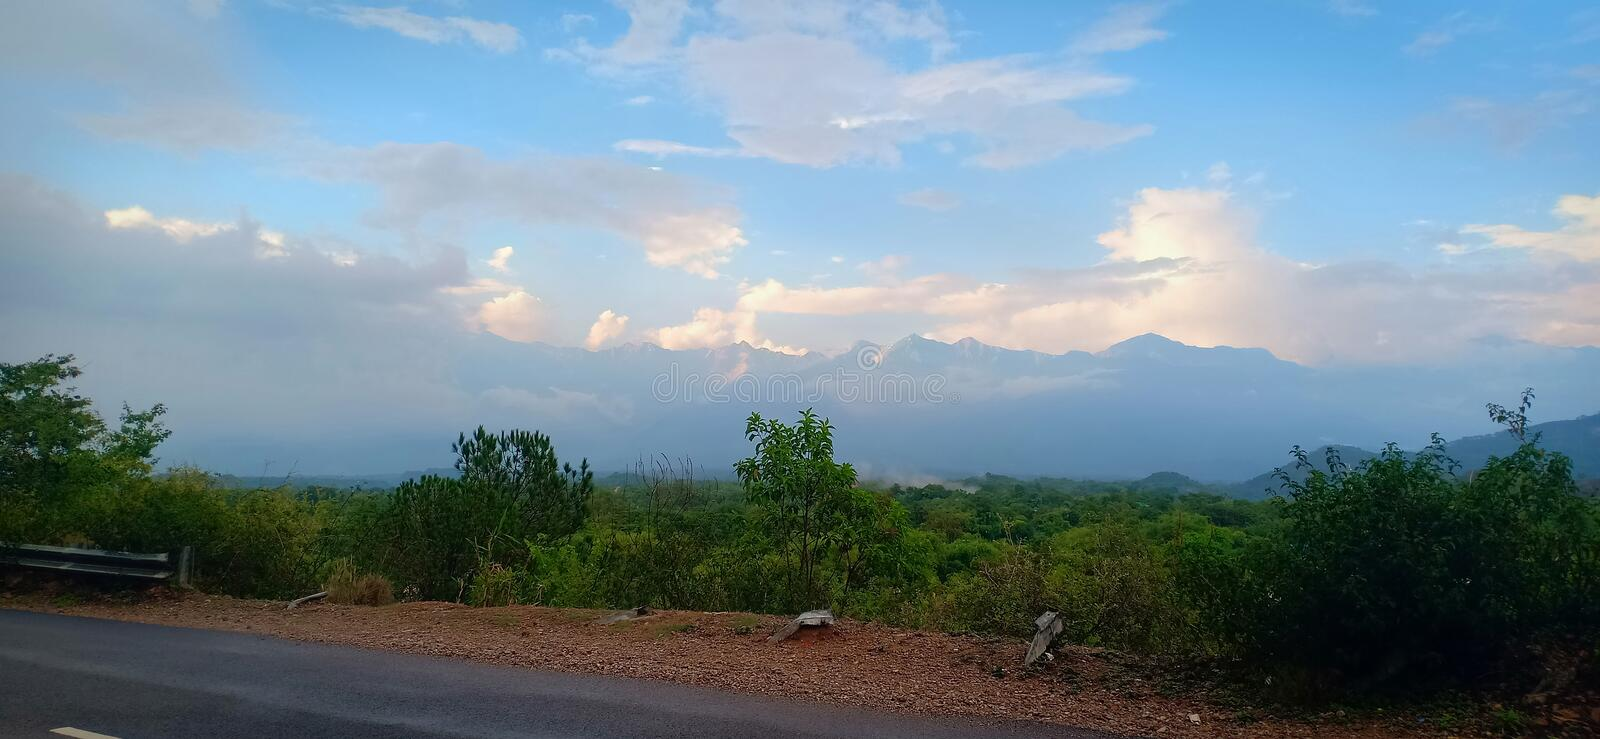 Road side cloudy weather. Palampur Himachal Pradesh royalty free stock photo